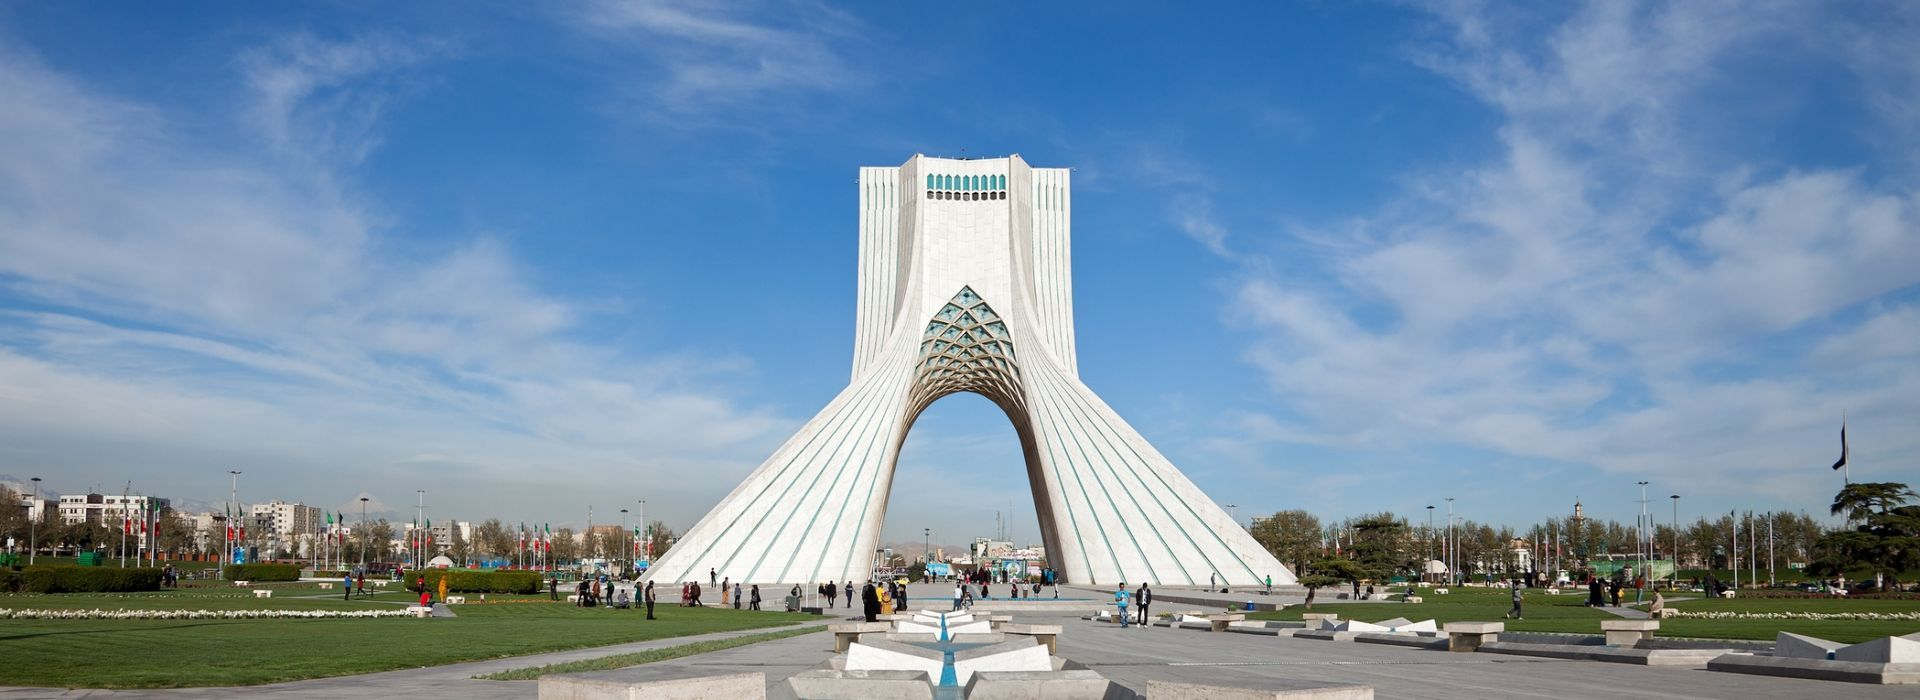 Air tours, road trips and transfers in Iran